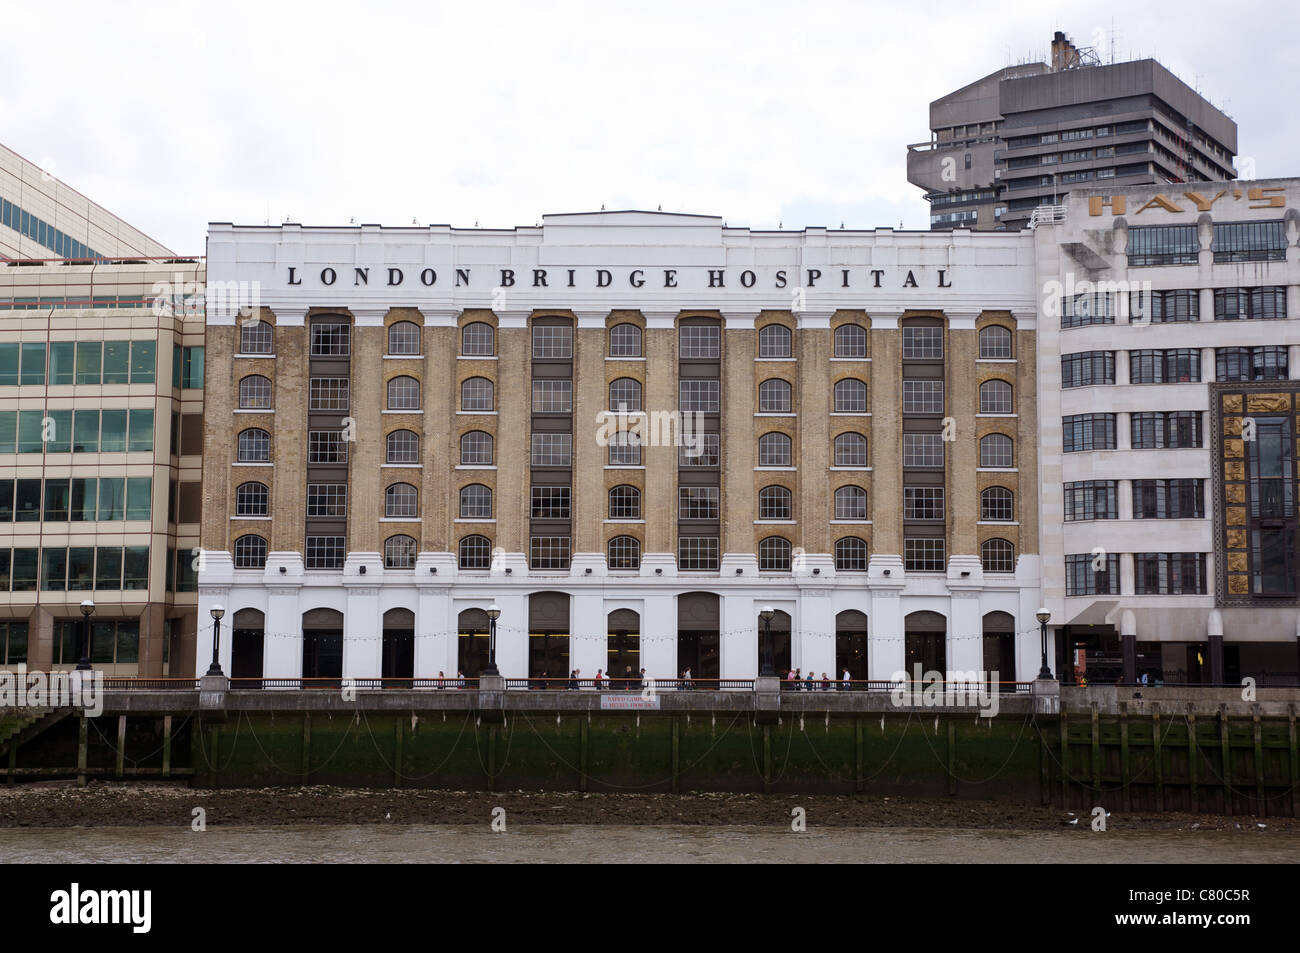 London Bridge Hospital - Stock Image